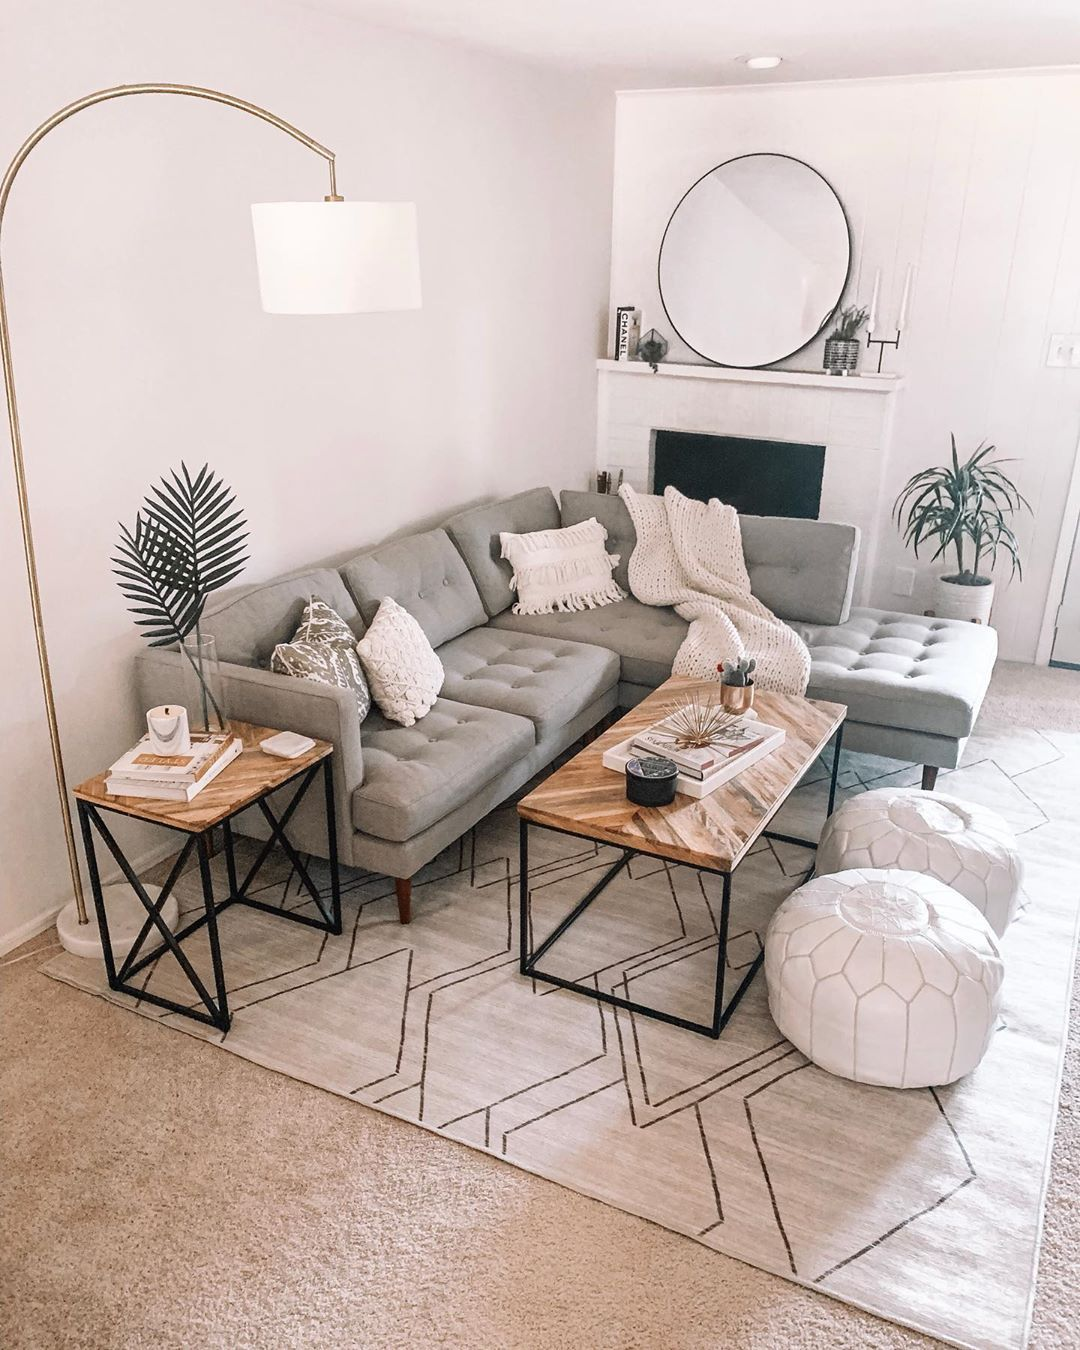 """Nickie Vu on Instagram: """"Loving our new setup in the living room 🙌🏼 What do y'all think of the new rug?! It took me so long to find the perfect pattern for our…"""""""